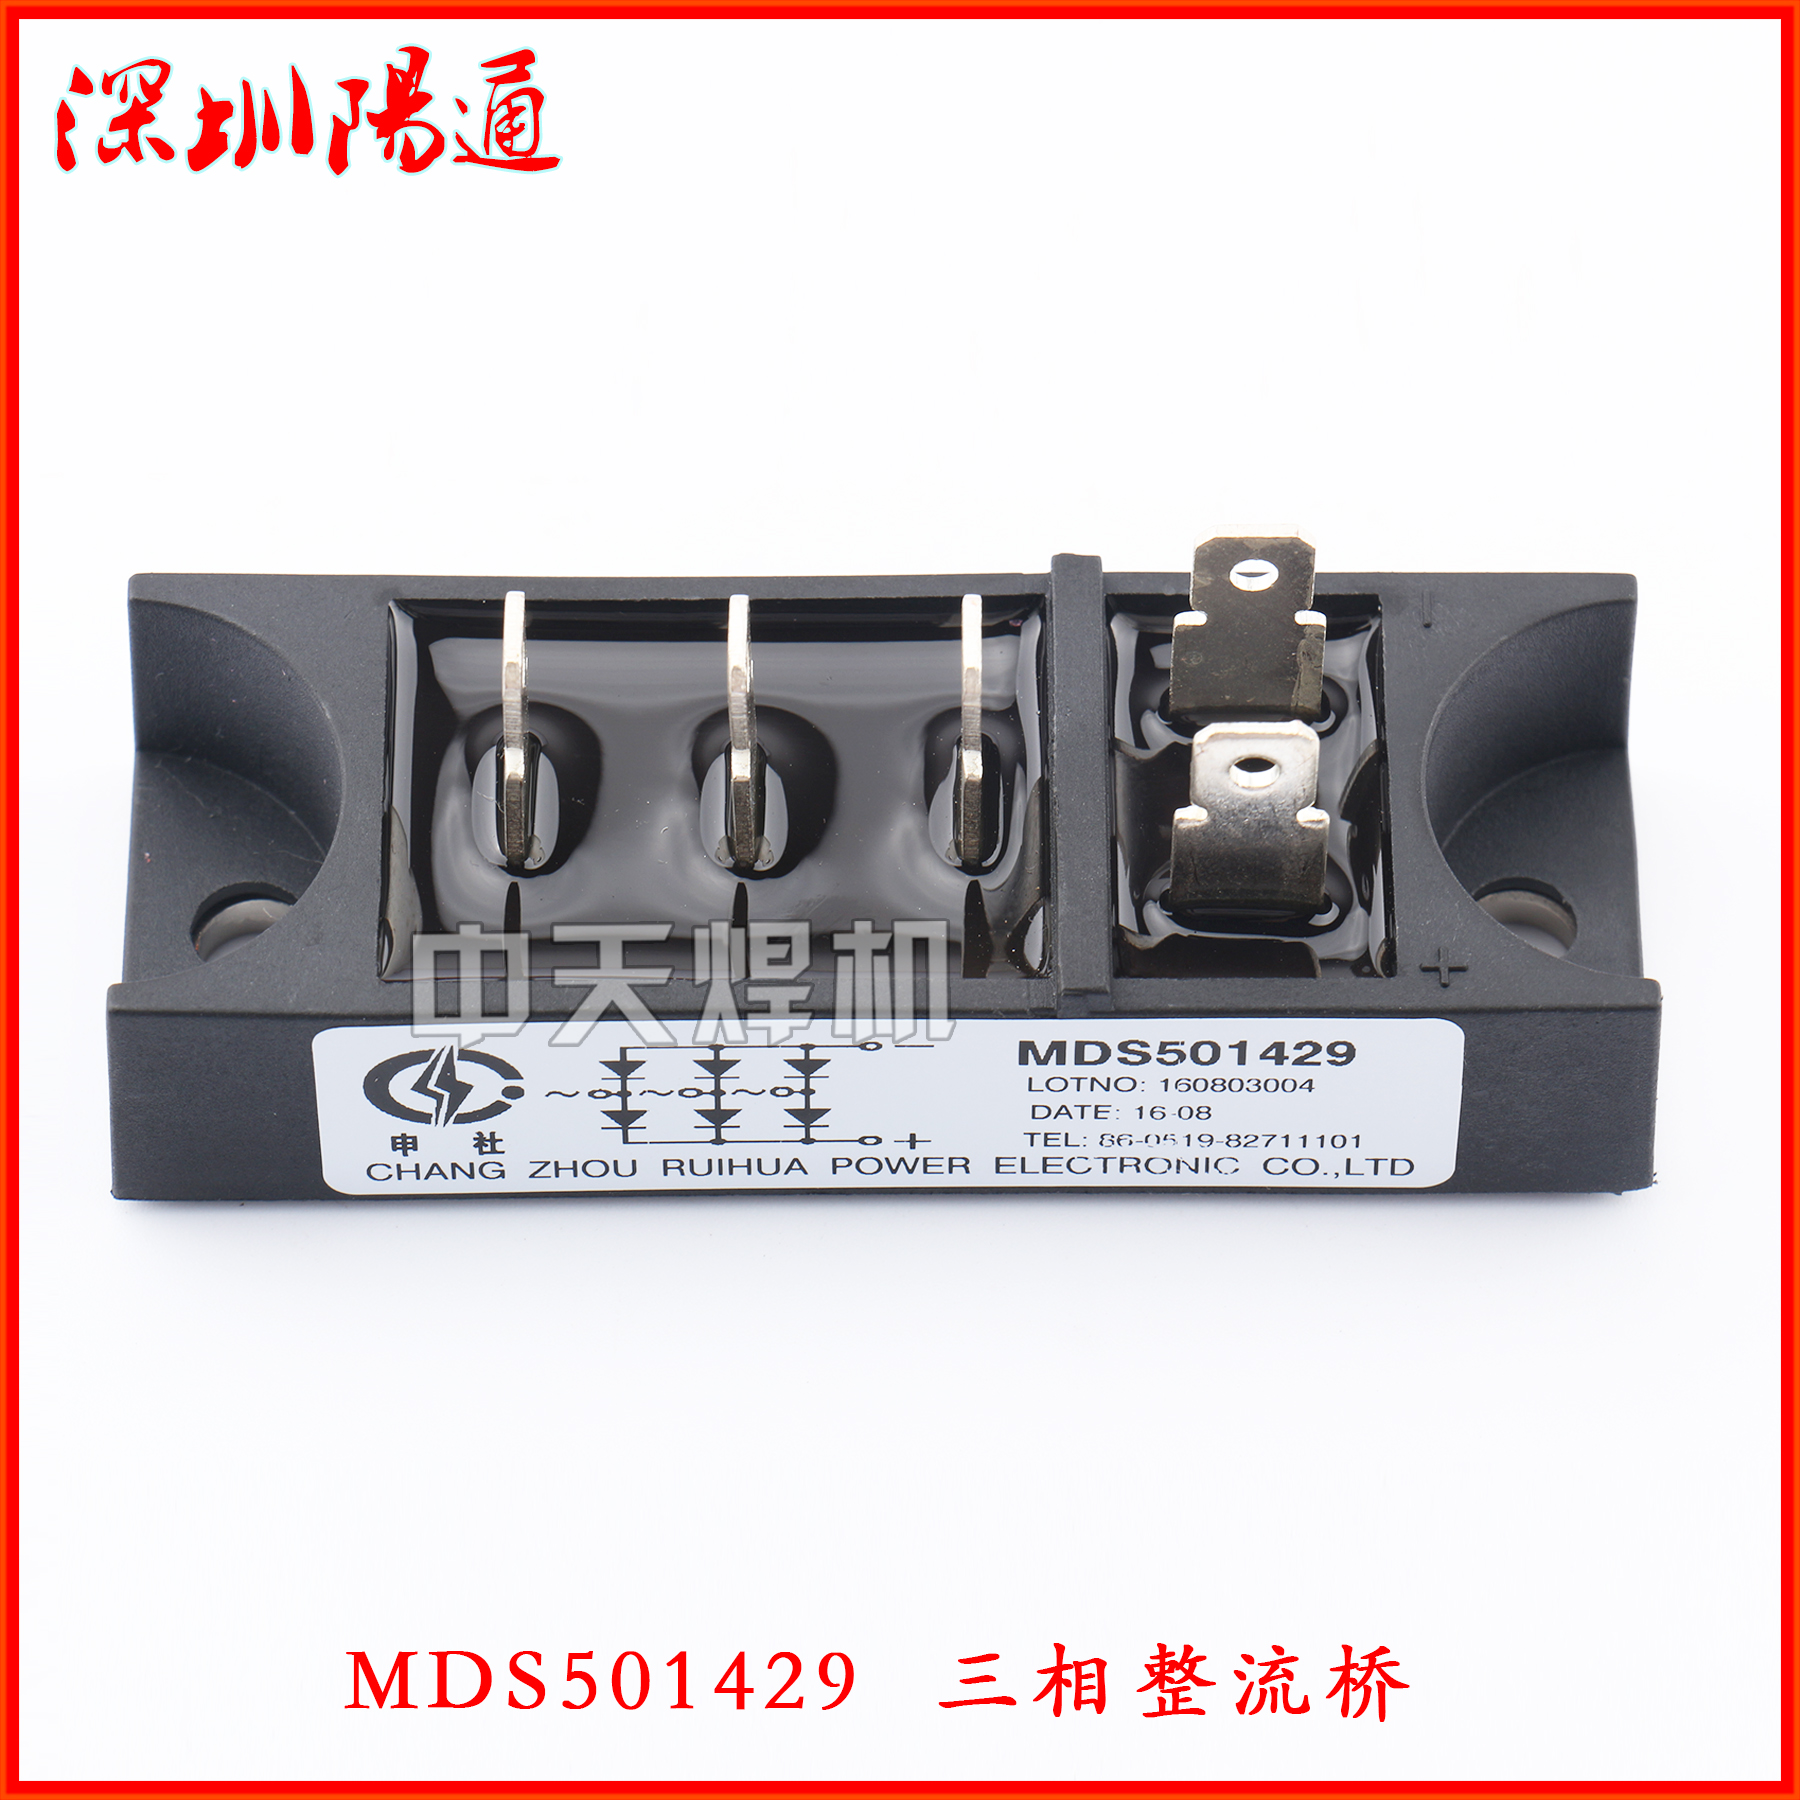 Original Shenshe MDS501429 Three-phase Rectifier Bridge Silicon Bridge MDS50-14 Welding Machine Bridge Pile 50A1400V